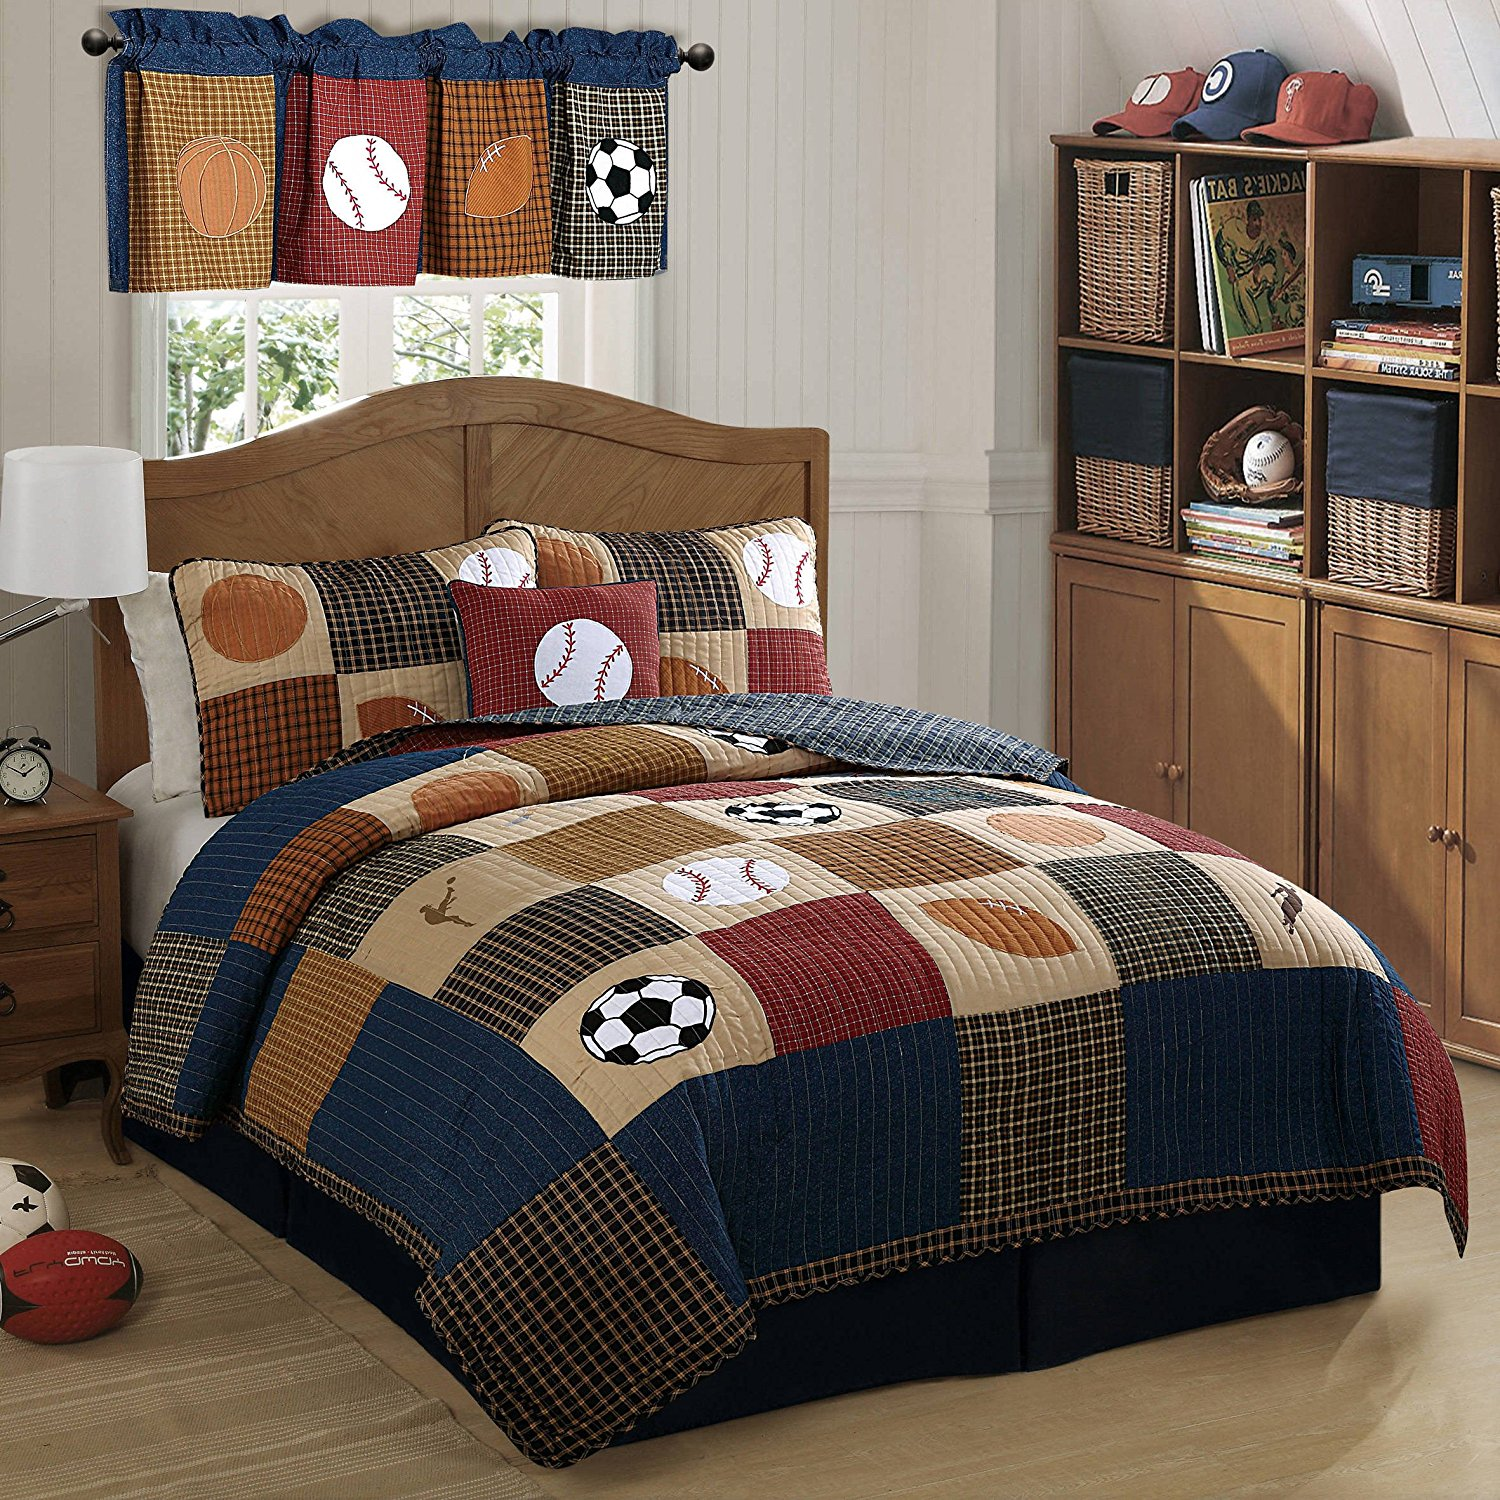 2 Piece Boys Tan Navy Red Brown Royal Blue Grey Twin Quilt Set, Sports Themed Bedding Patchwork Plaid Beige Basketball Soccer Football Baseball Stylish Fun Colorful Bold Athlete, Cotton